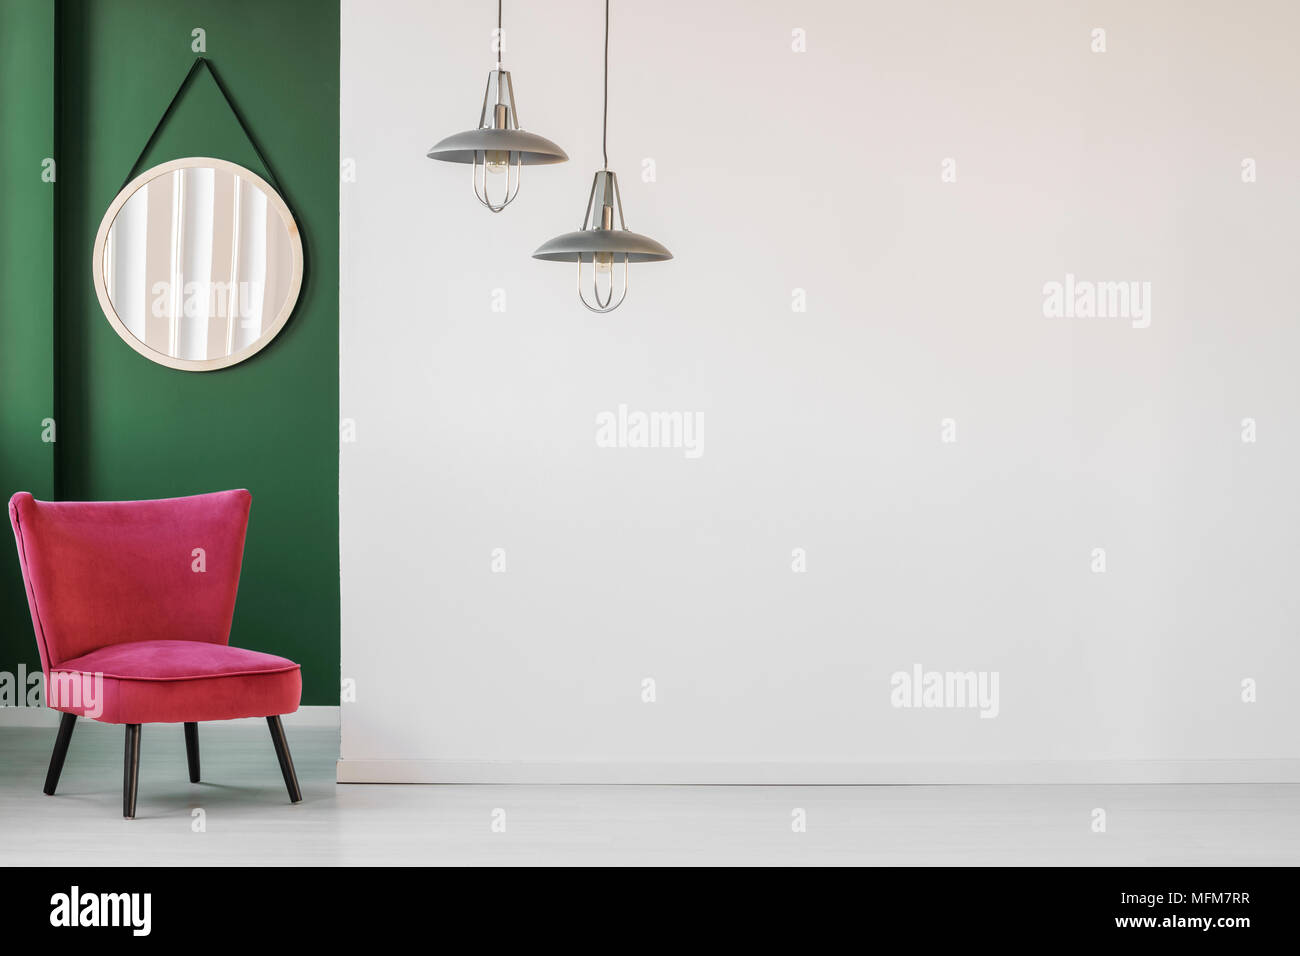 Minimalist Living Room Interior With White Empty Wall Comfortable Retro Chair And A Round Hanging Mirror In Green Corner